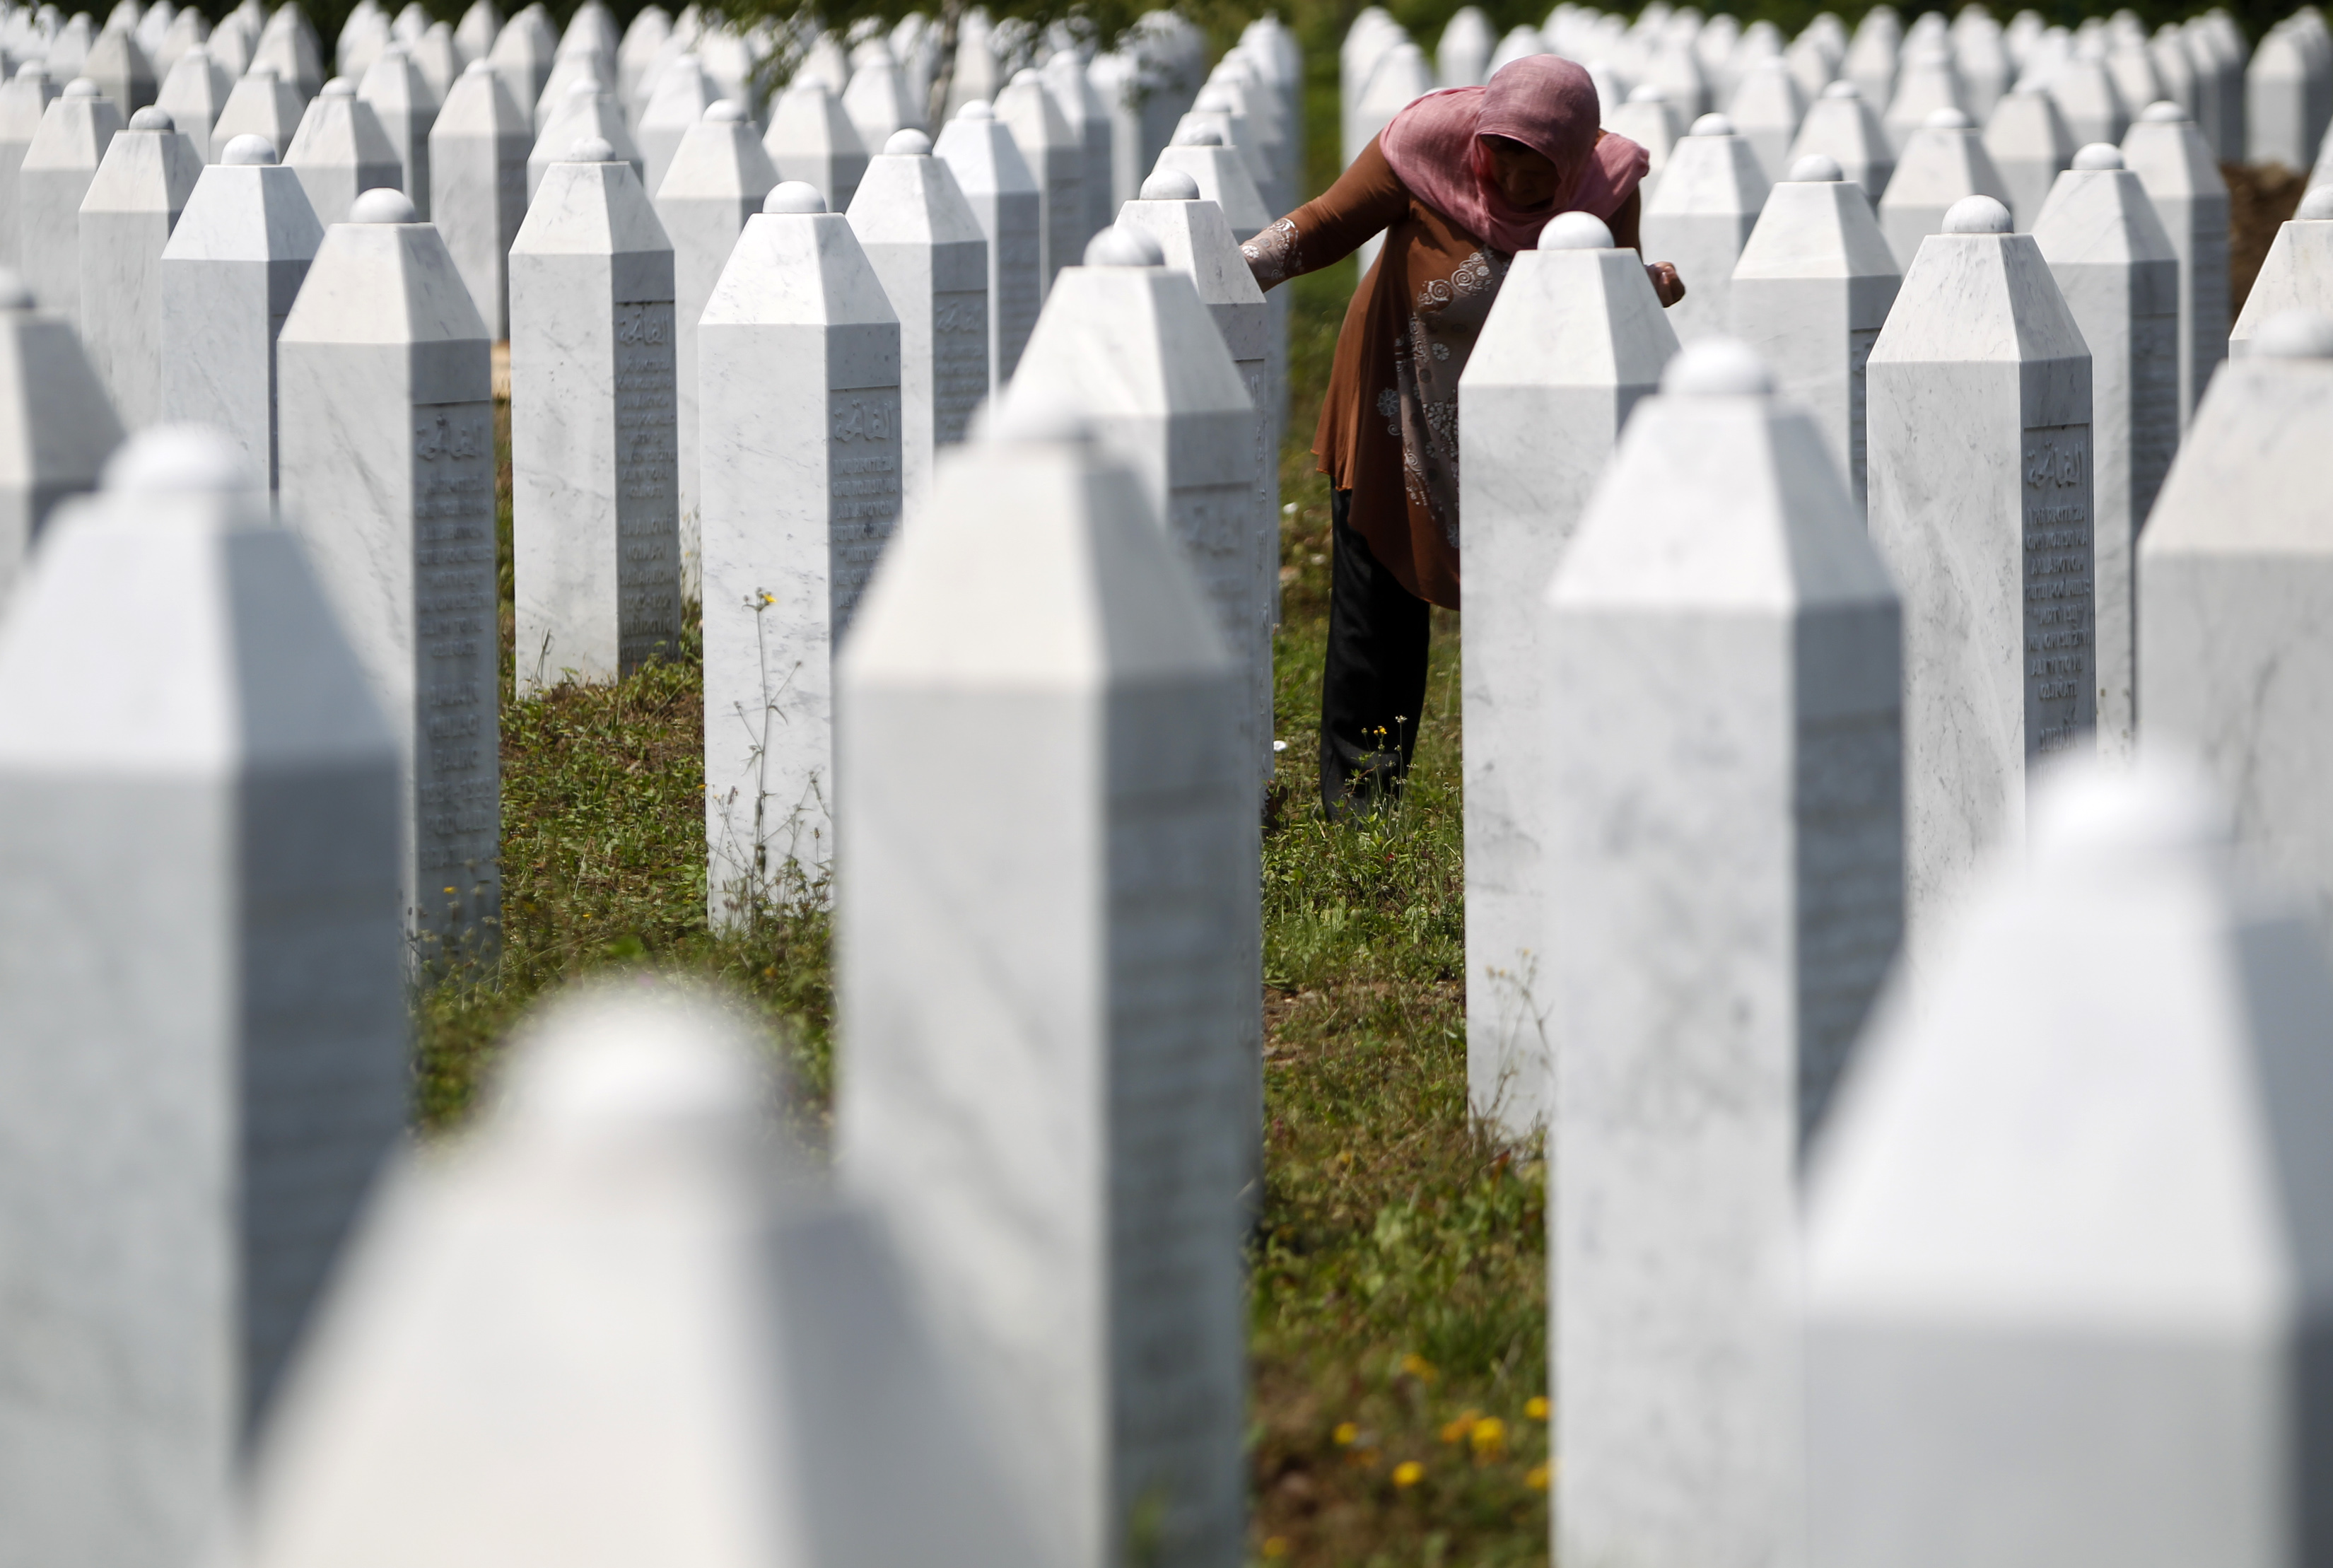 A Bosnian woman tries to find the grave of her relative in Memorial Center Potocari near Srebrenica July 10, 2013. The bodies of the recently identified victims will be transported to the memorial centre in Potocari where they will be buried on July 11 marking the 18th anniversary of the massacre in which Bosnian Serb forces commanded by Ratko Mladic killed up to 8,000 Muslim men and boys and buried them in mass graves. REUTERS/Dado Ruvic